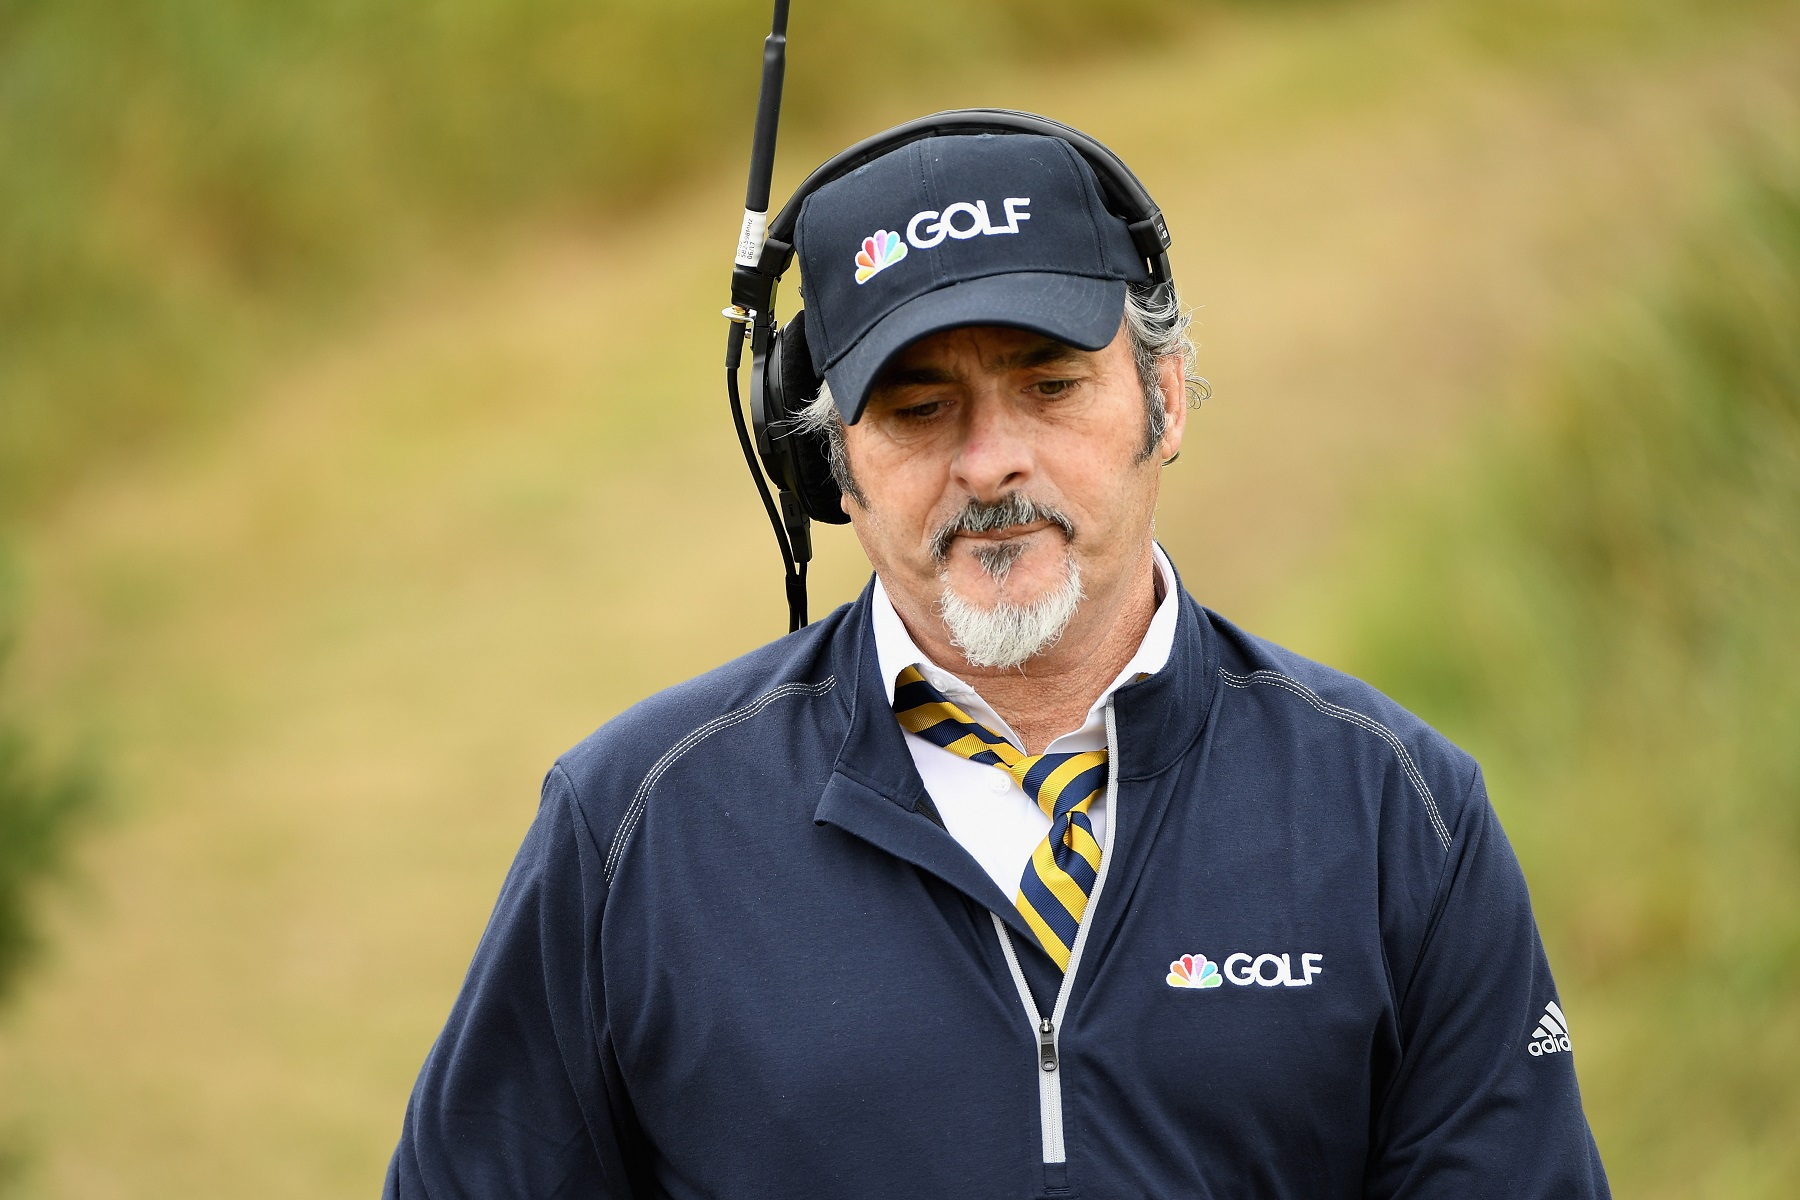 Golf Channel Has Silenced David Feherty, 1 of the Most Entertaining Voices in Sports